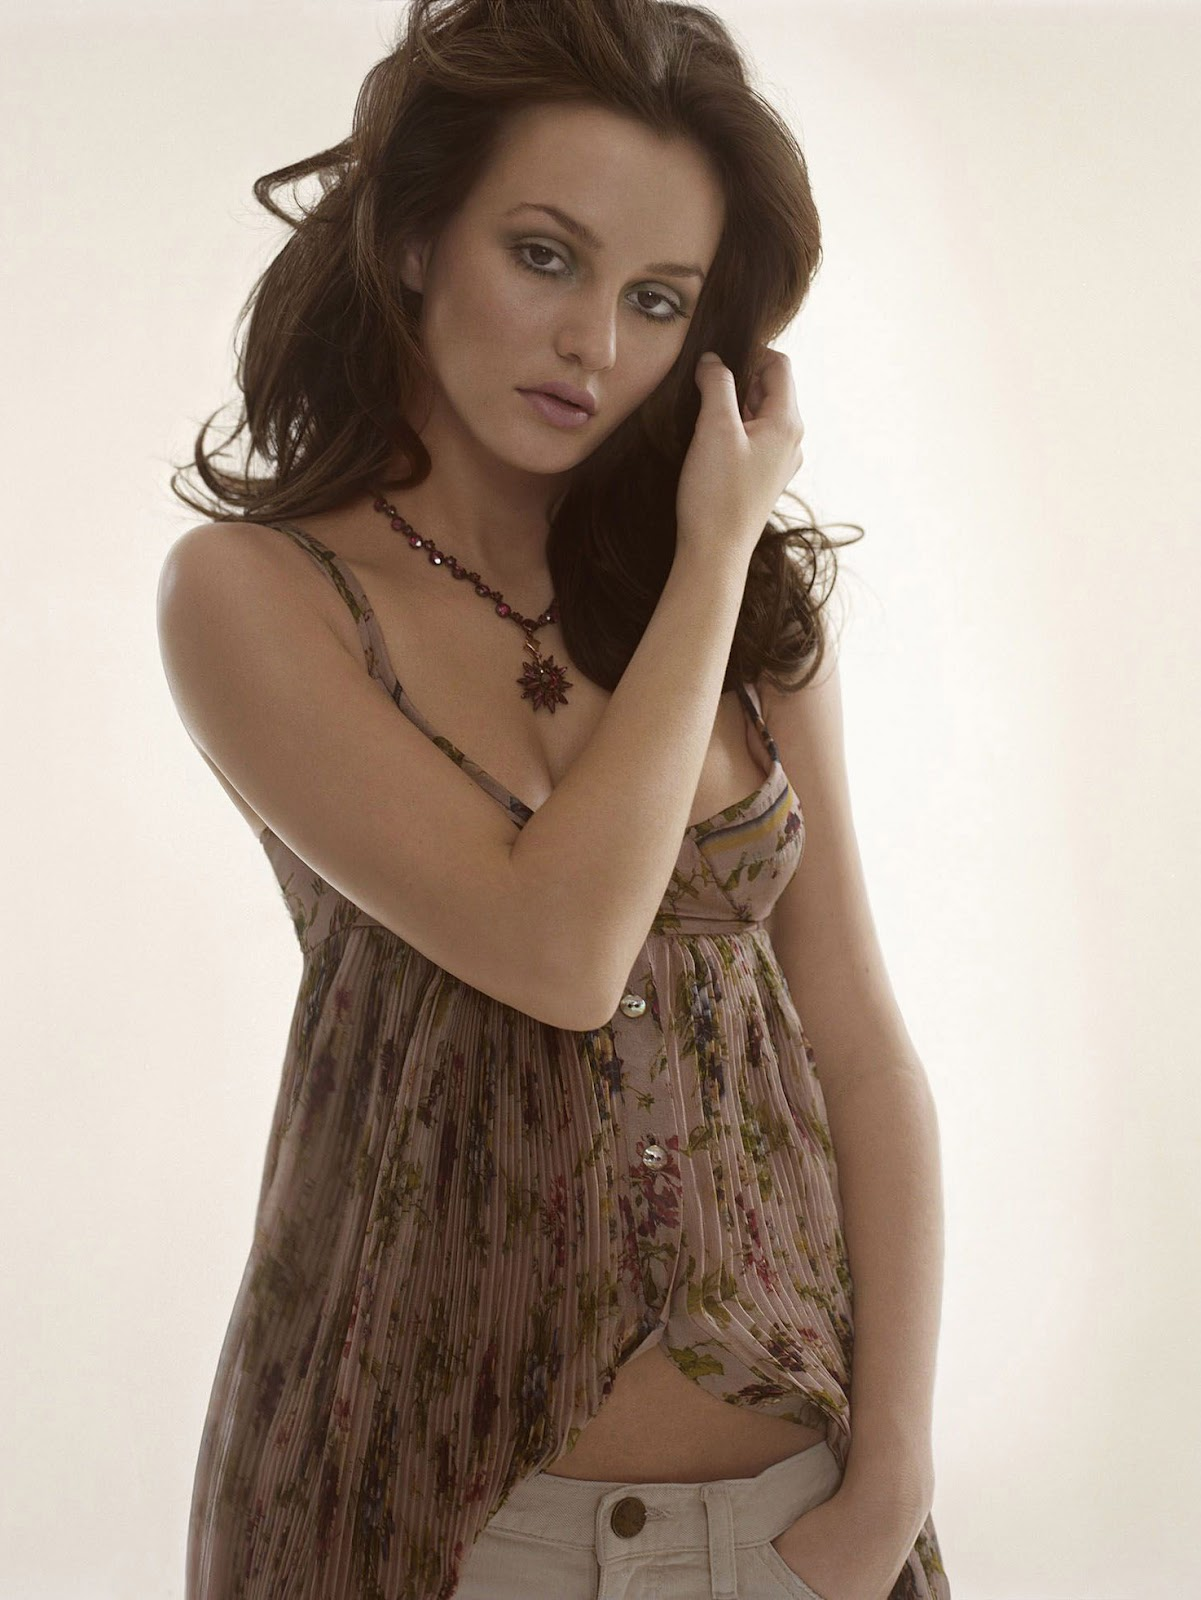 Leighton Meester Sexy Photoshoot - Hottest Pictures